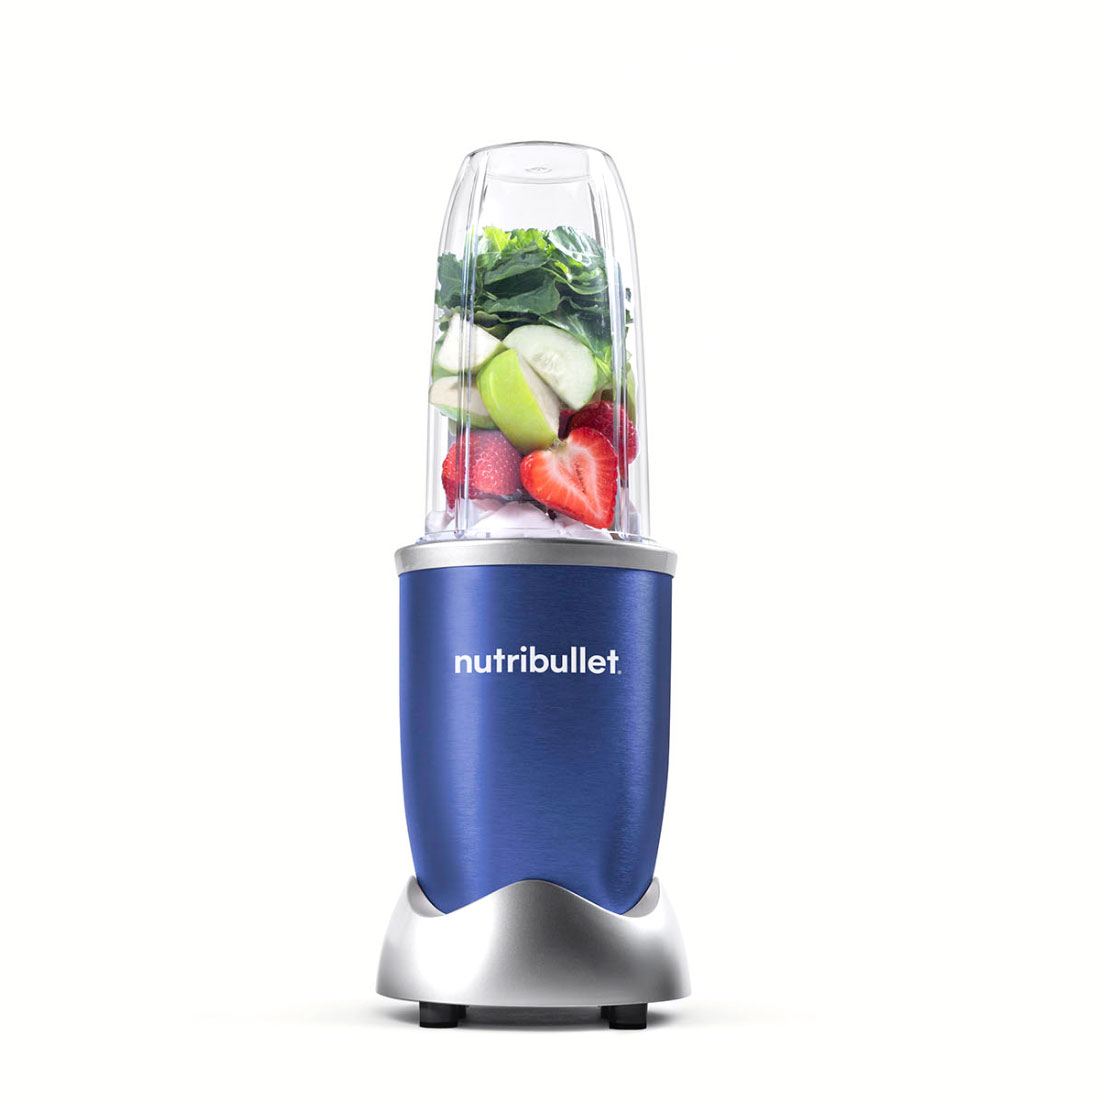 An image of NutriBullet 1000 Series